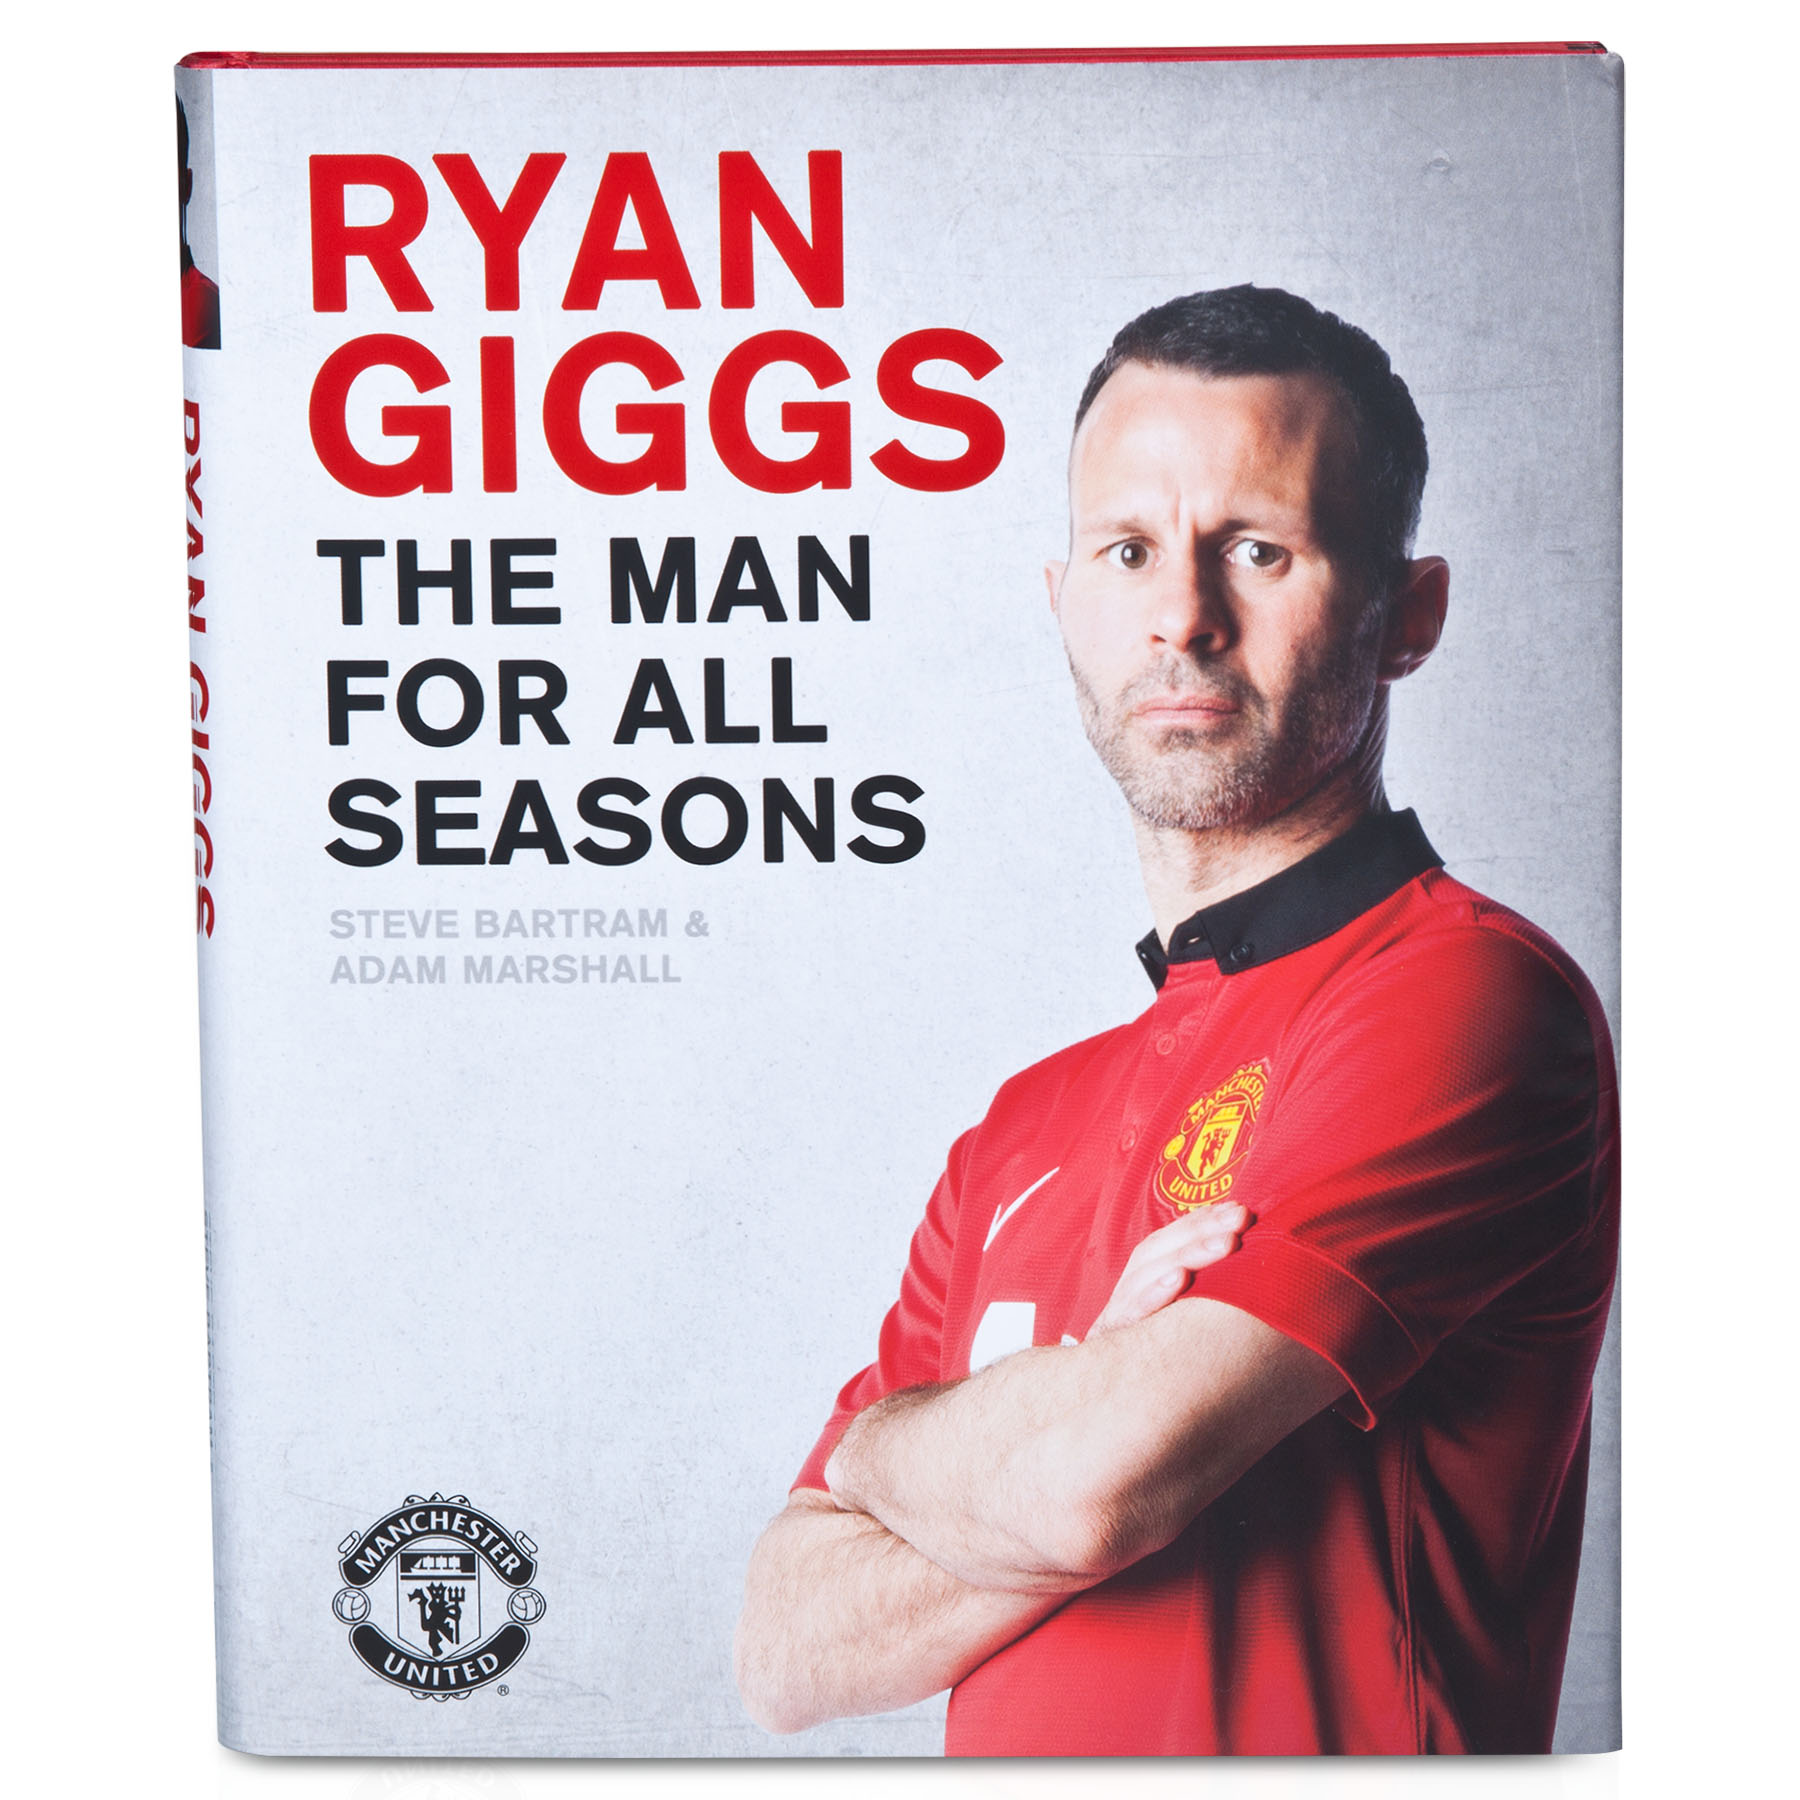 Manchester United Ryan Giggs - The Man For All Seasons - Hard Back Book